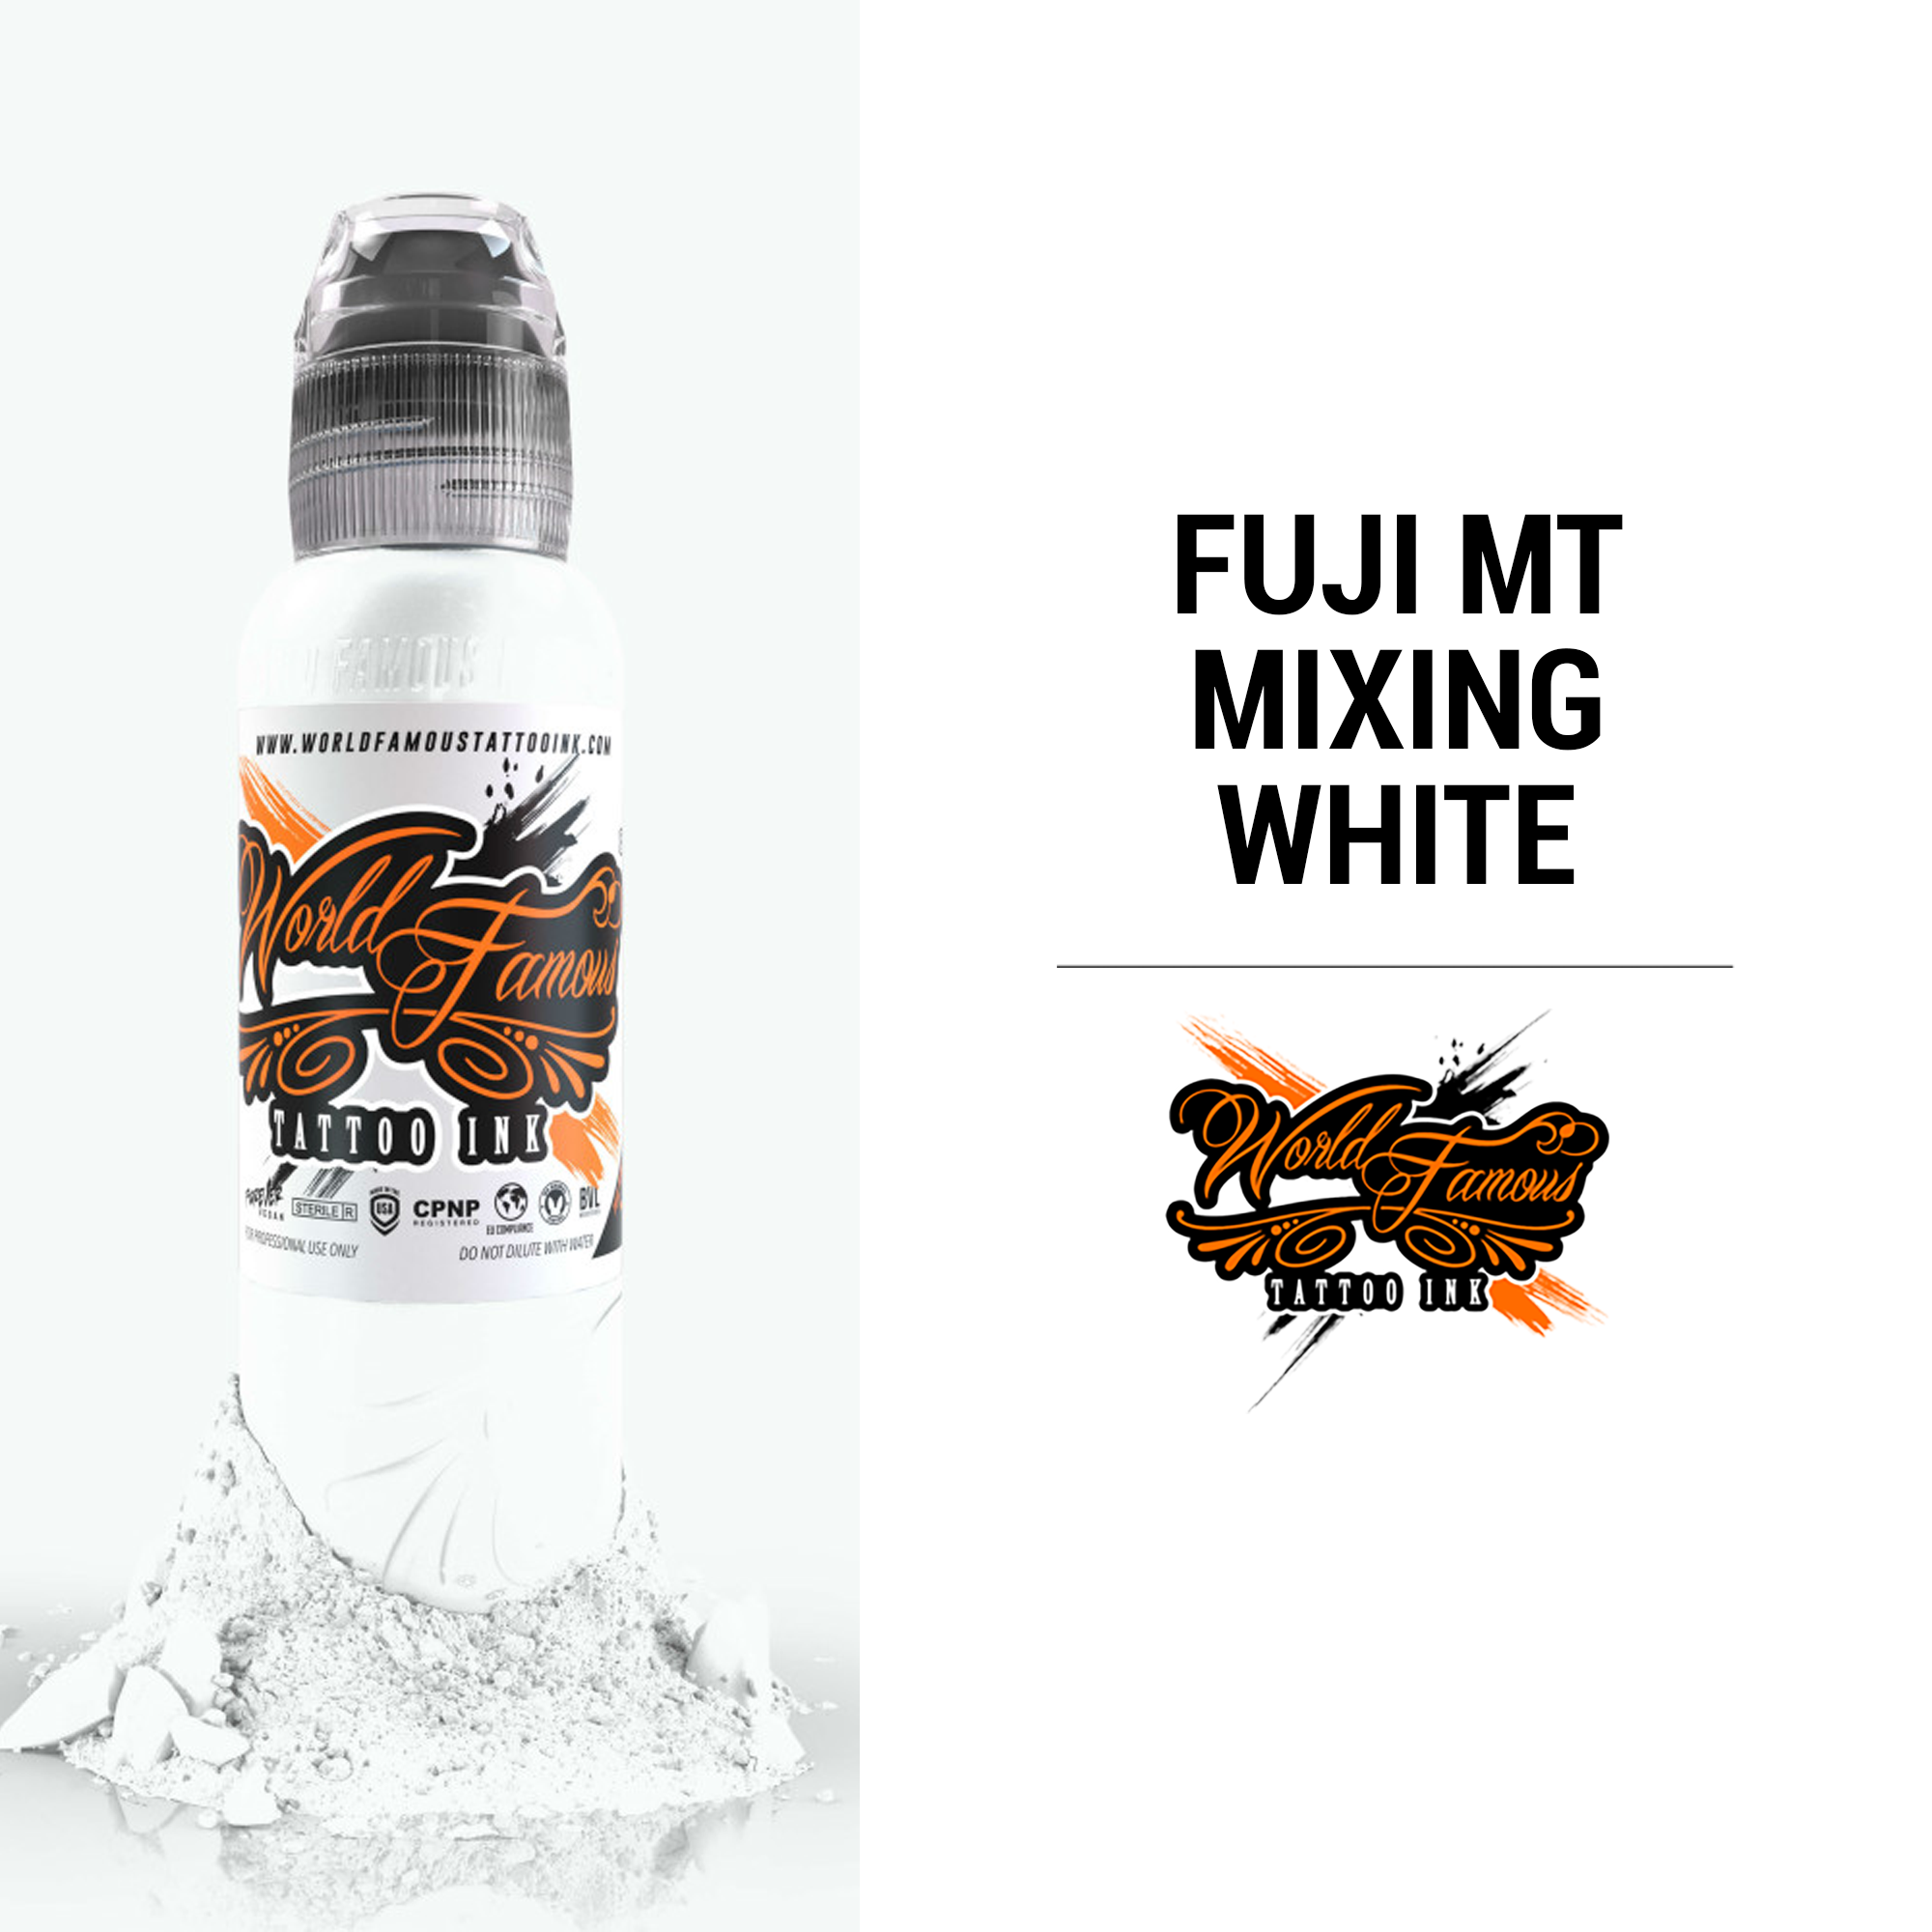 WF Fuji Mt Mixing White